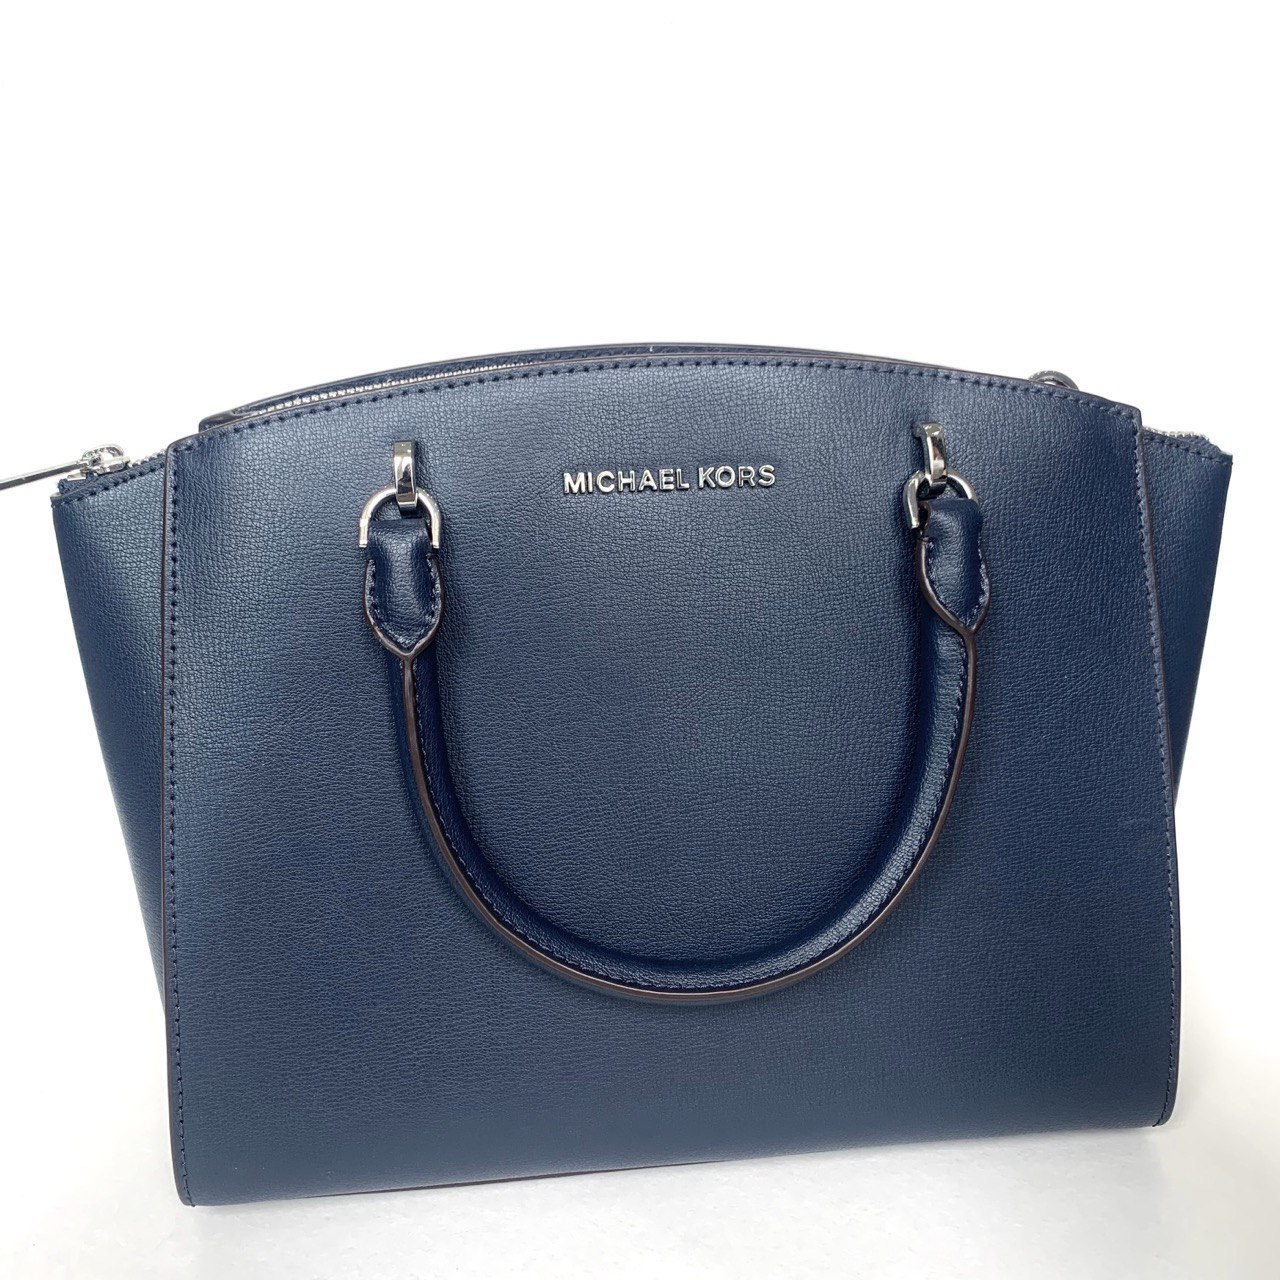 Сумка Michael Kors ELLIS LG Satchel NAVY